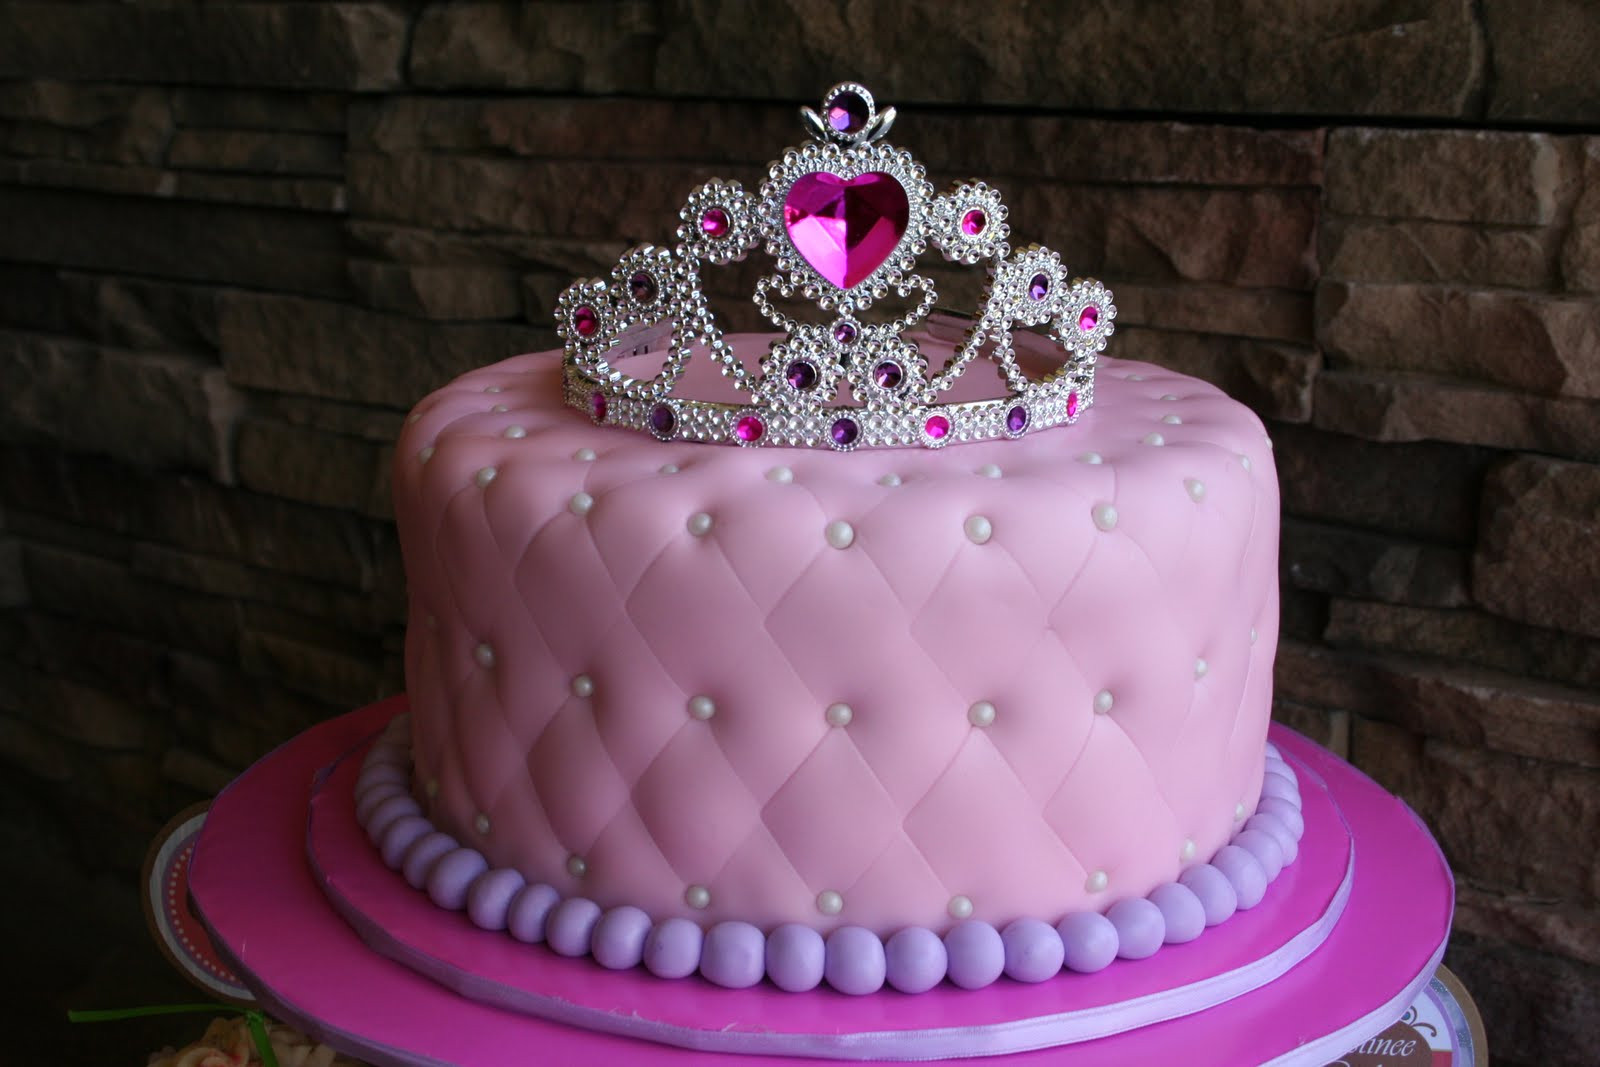 Best ideas about Princess Birthday Cake . Save or Pin cakes by narleen kristel a princess 1st birthday Now.